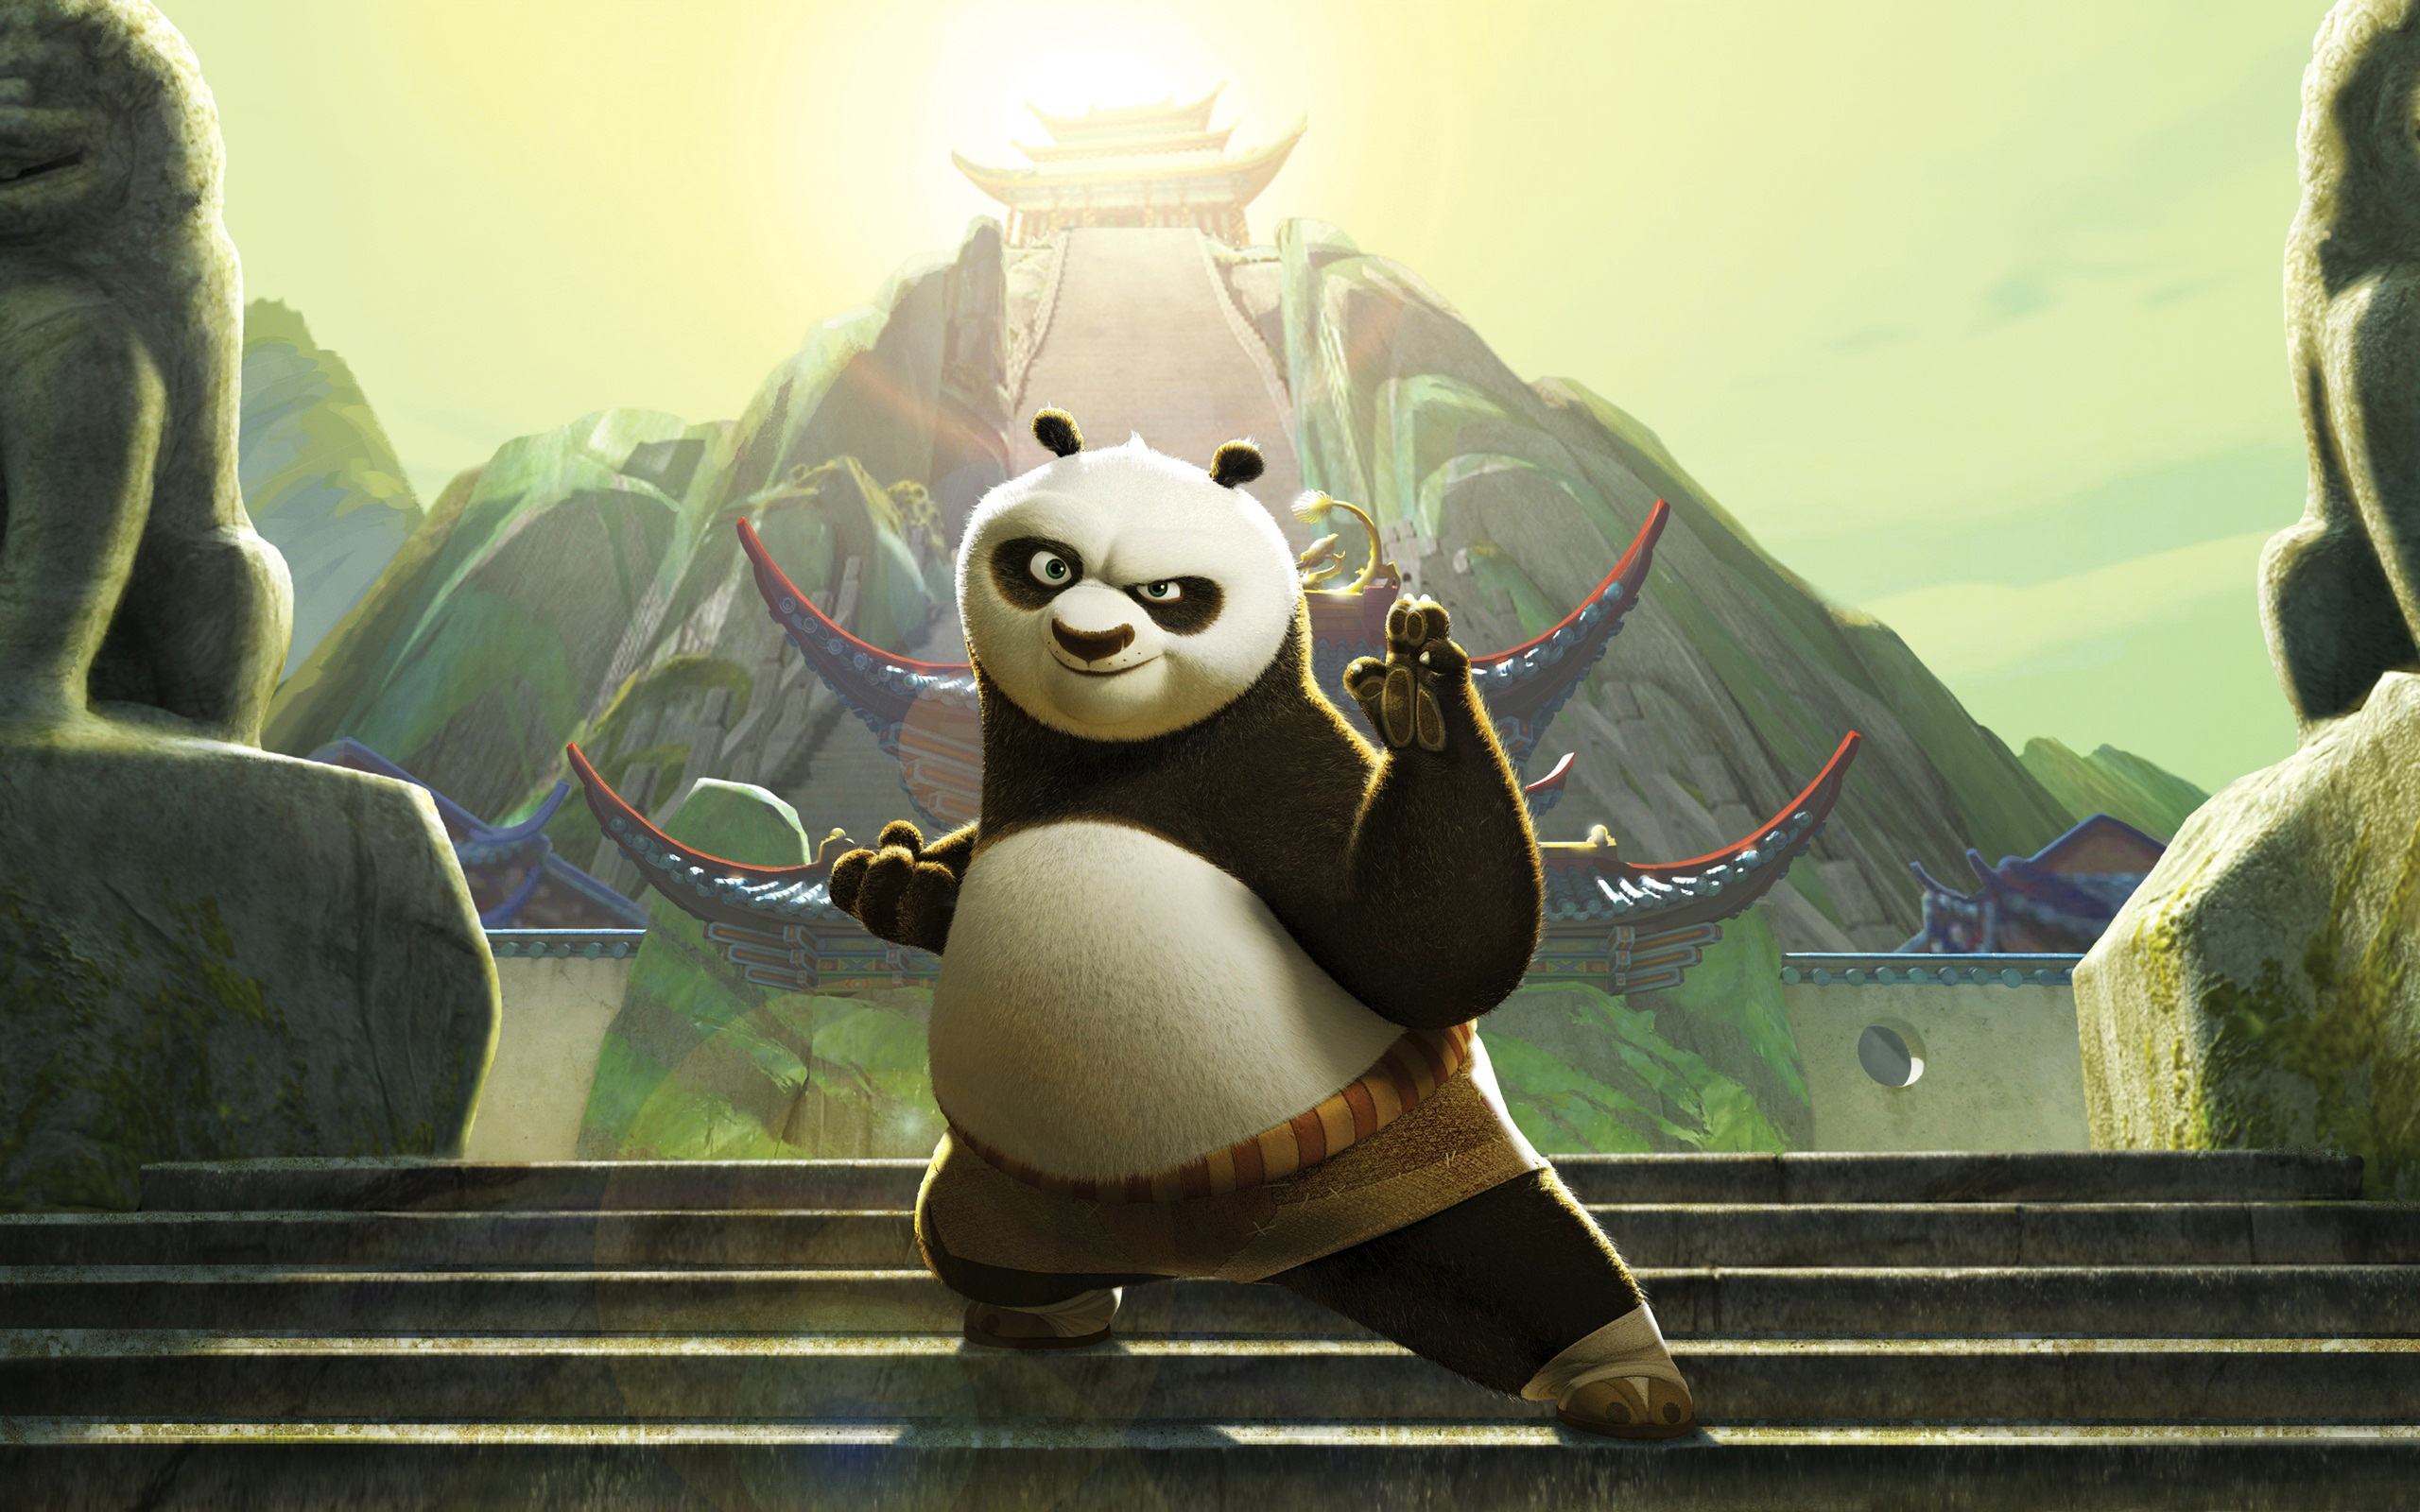 Kung Fu Panda 2 Movie 2011 349.3 Kb